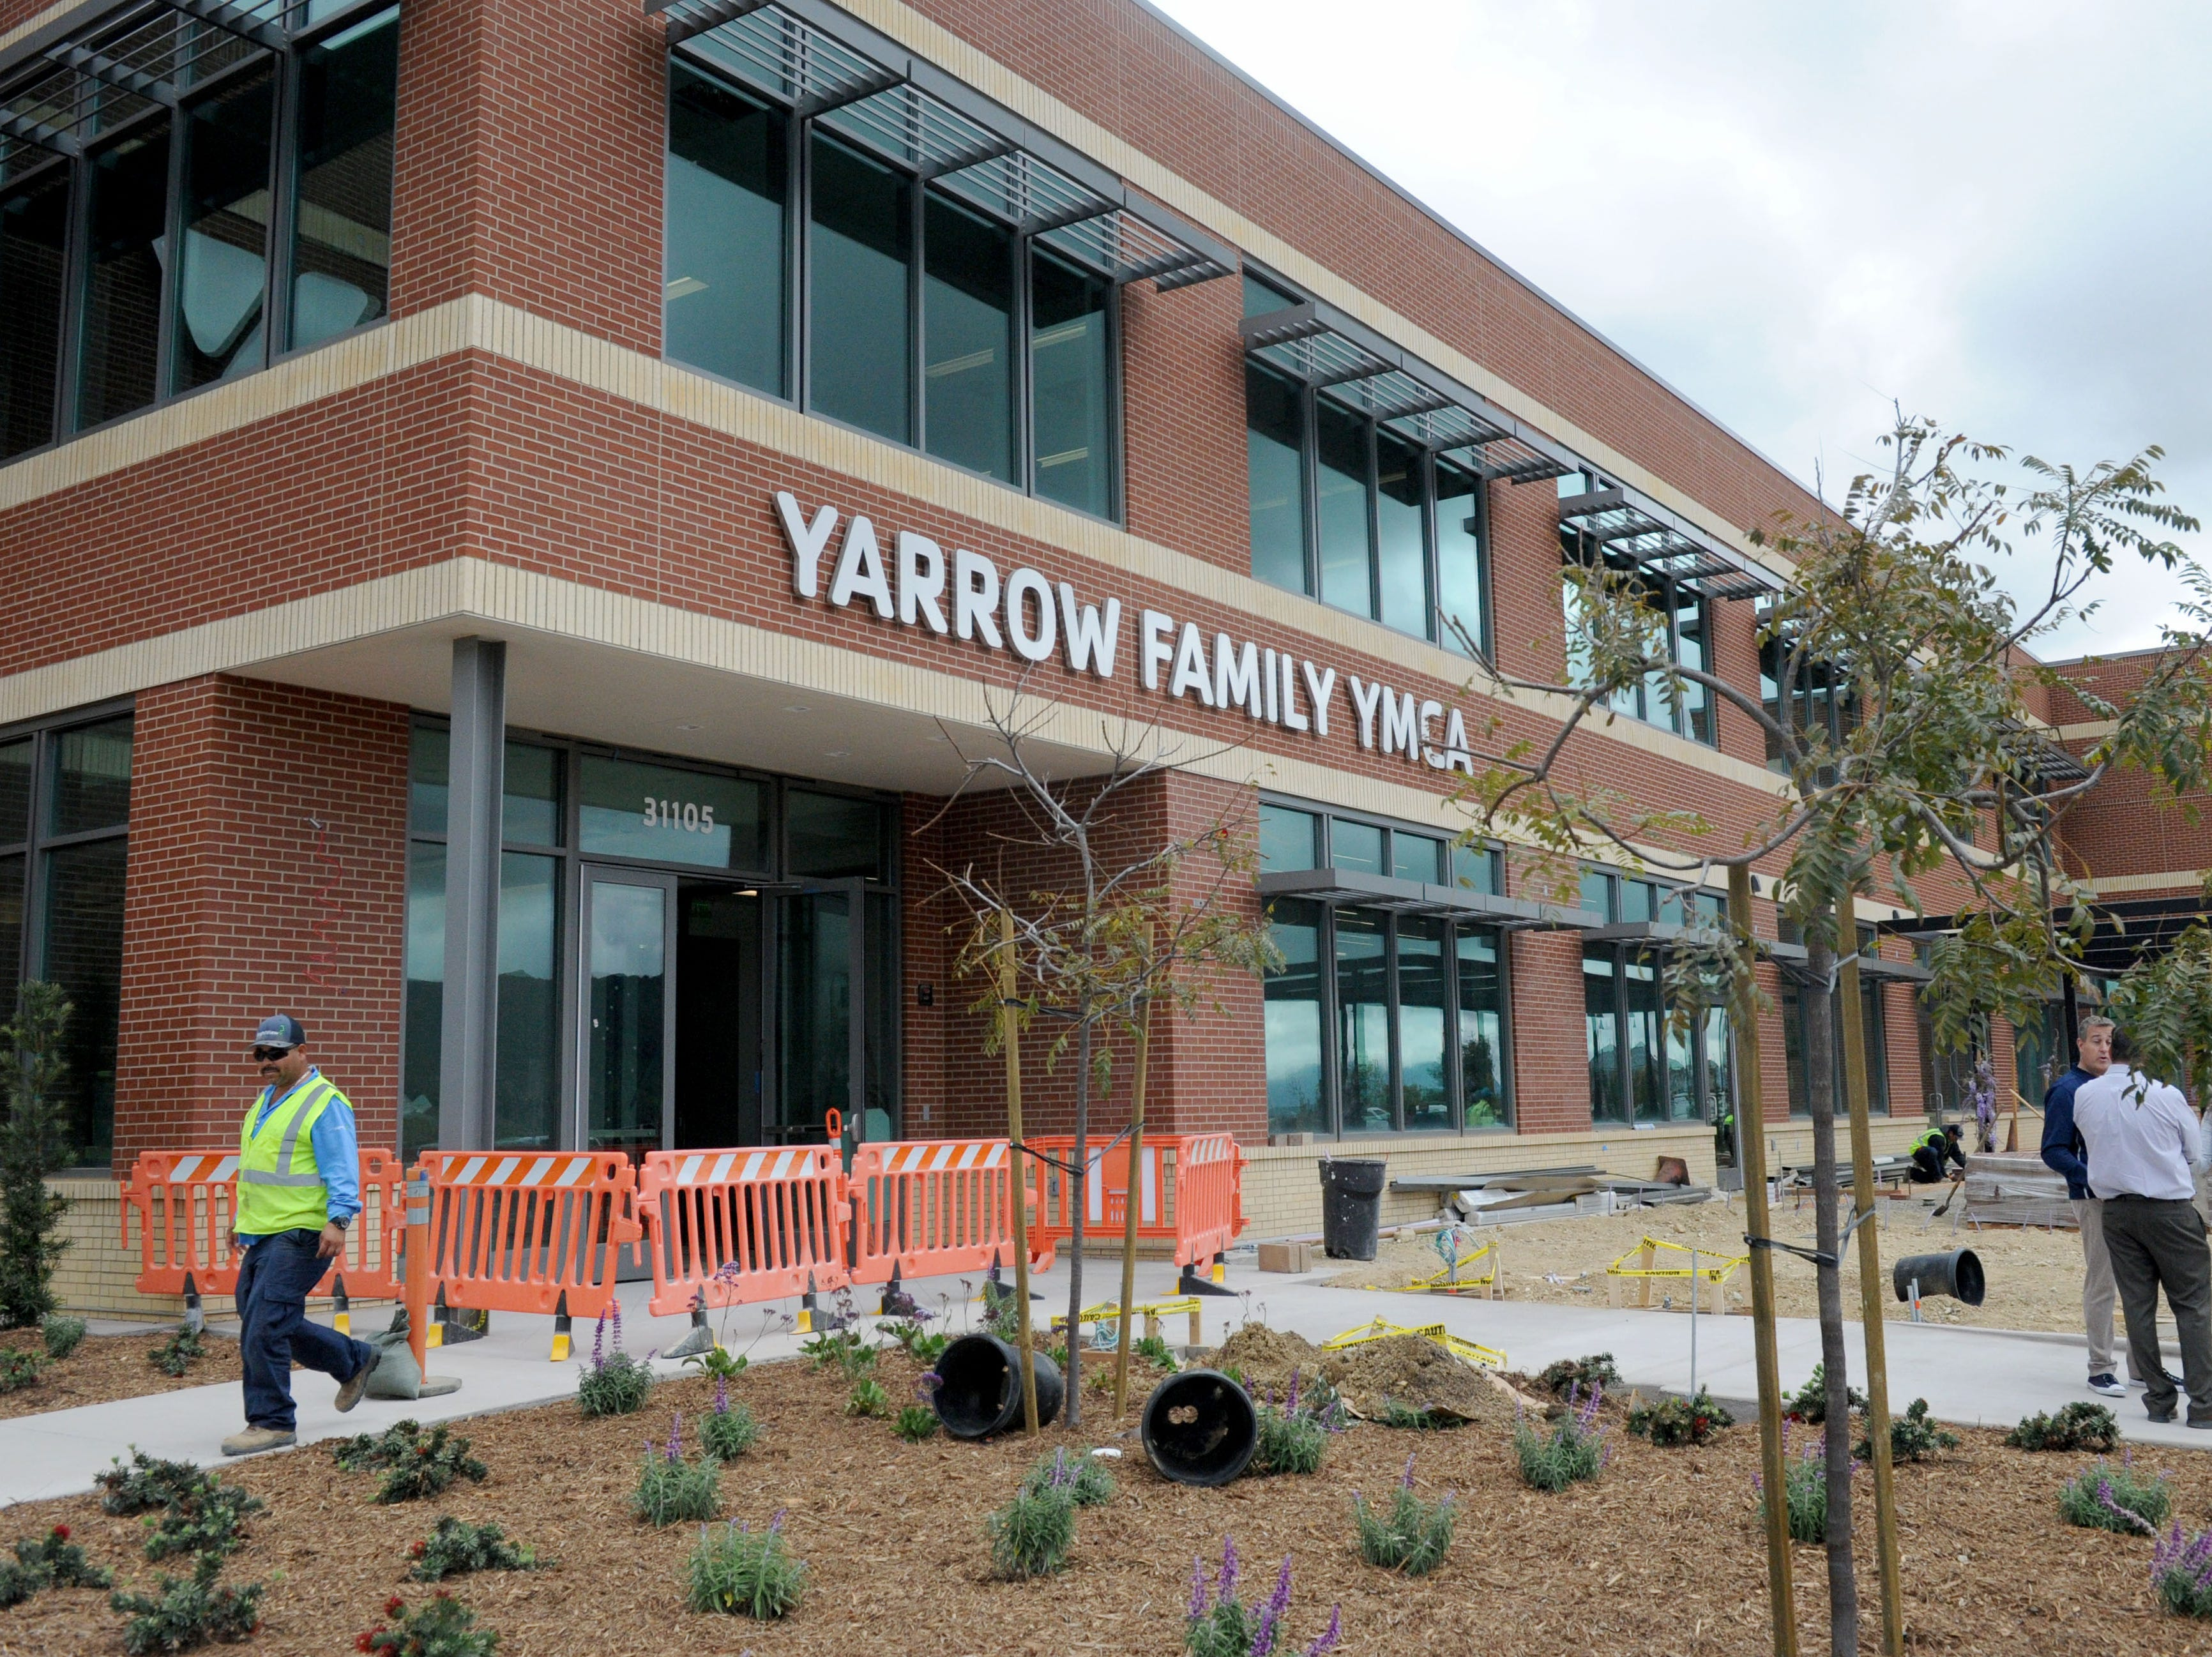 Landscape workers put the finishing touches on the Yarrow Family YMCA in Westlake Village. The facility's grand opening is April 27.